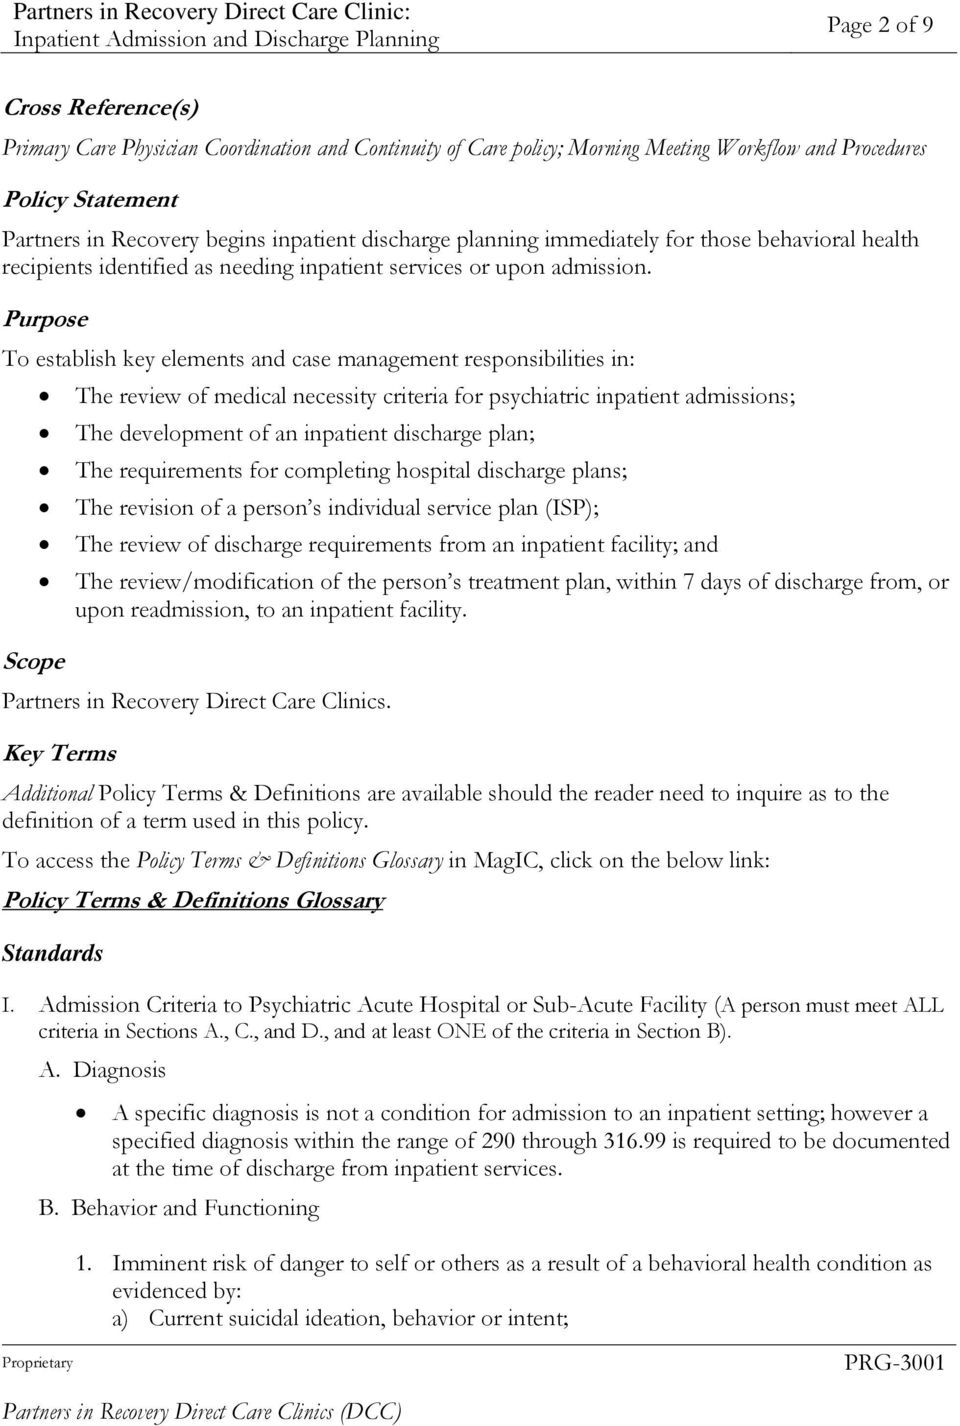 Purpose To establish key elements and case management responsibilities in: The review of medical necessity criteria for psychiatric inpatient admissions; The development of an inpatient discharge